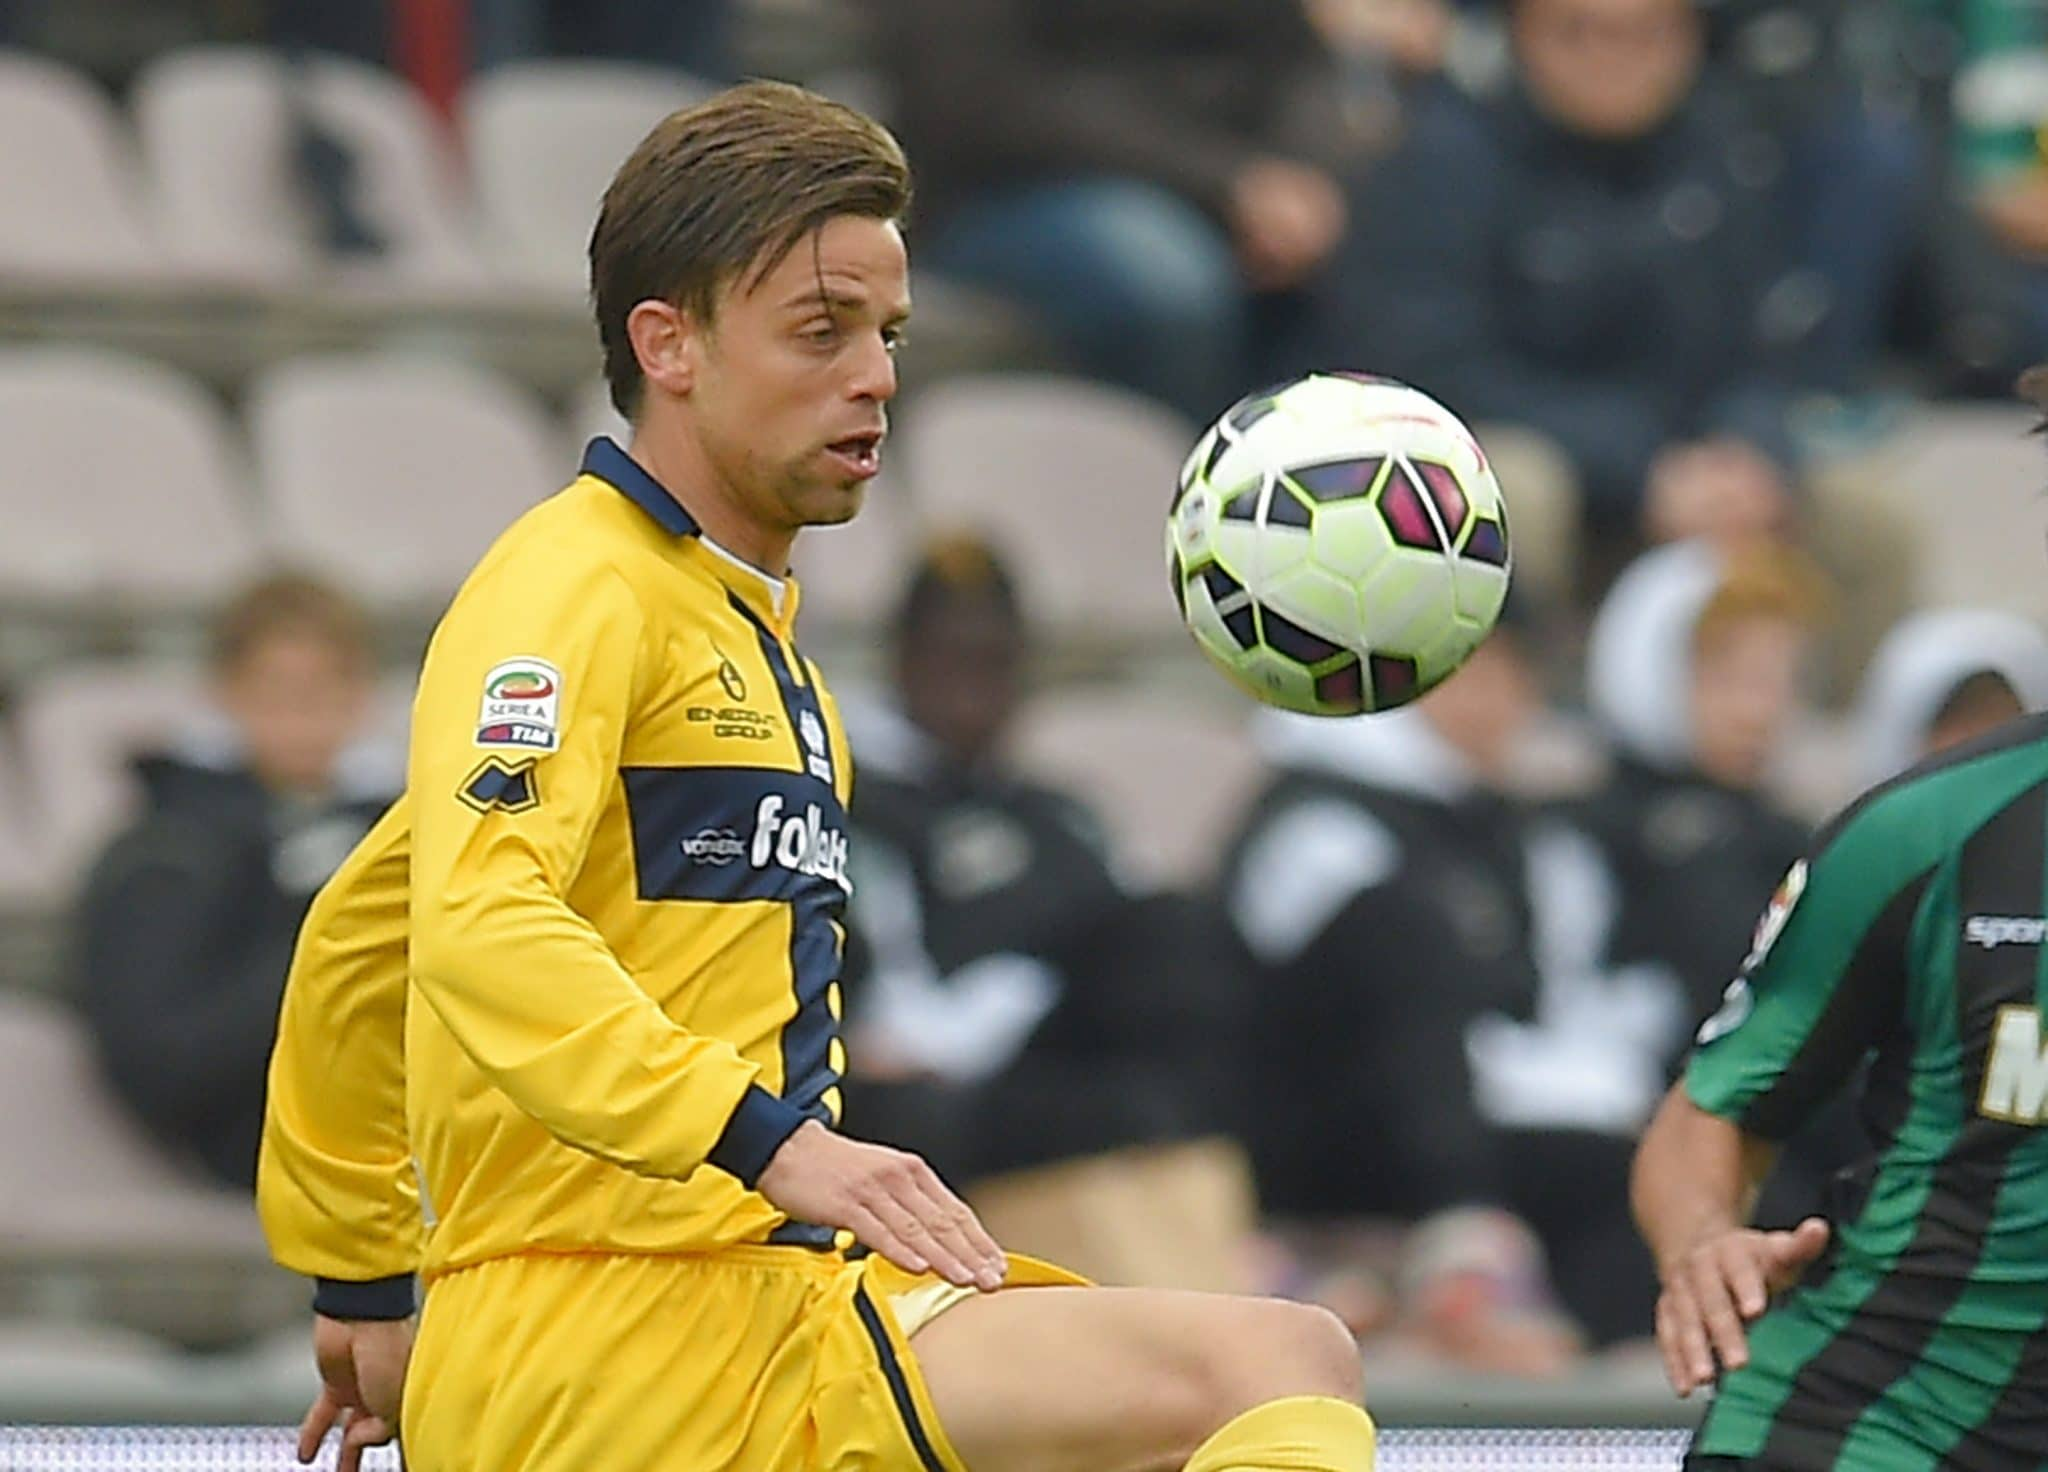 REGGIO NELL'EMILIA, ITALY - MARCH 15:  Daniele Galloppa of Parma in action during the Serie A match between US Sassuolo Calcio and Parma FC at Mapei Stadium on March 15, 2015 in Reggio nell'Emilia, Italy.  (Photo by Giuseppe Bellini/Getty Images)